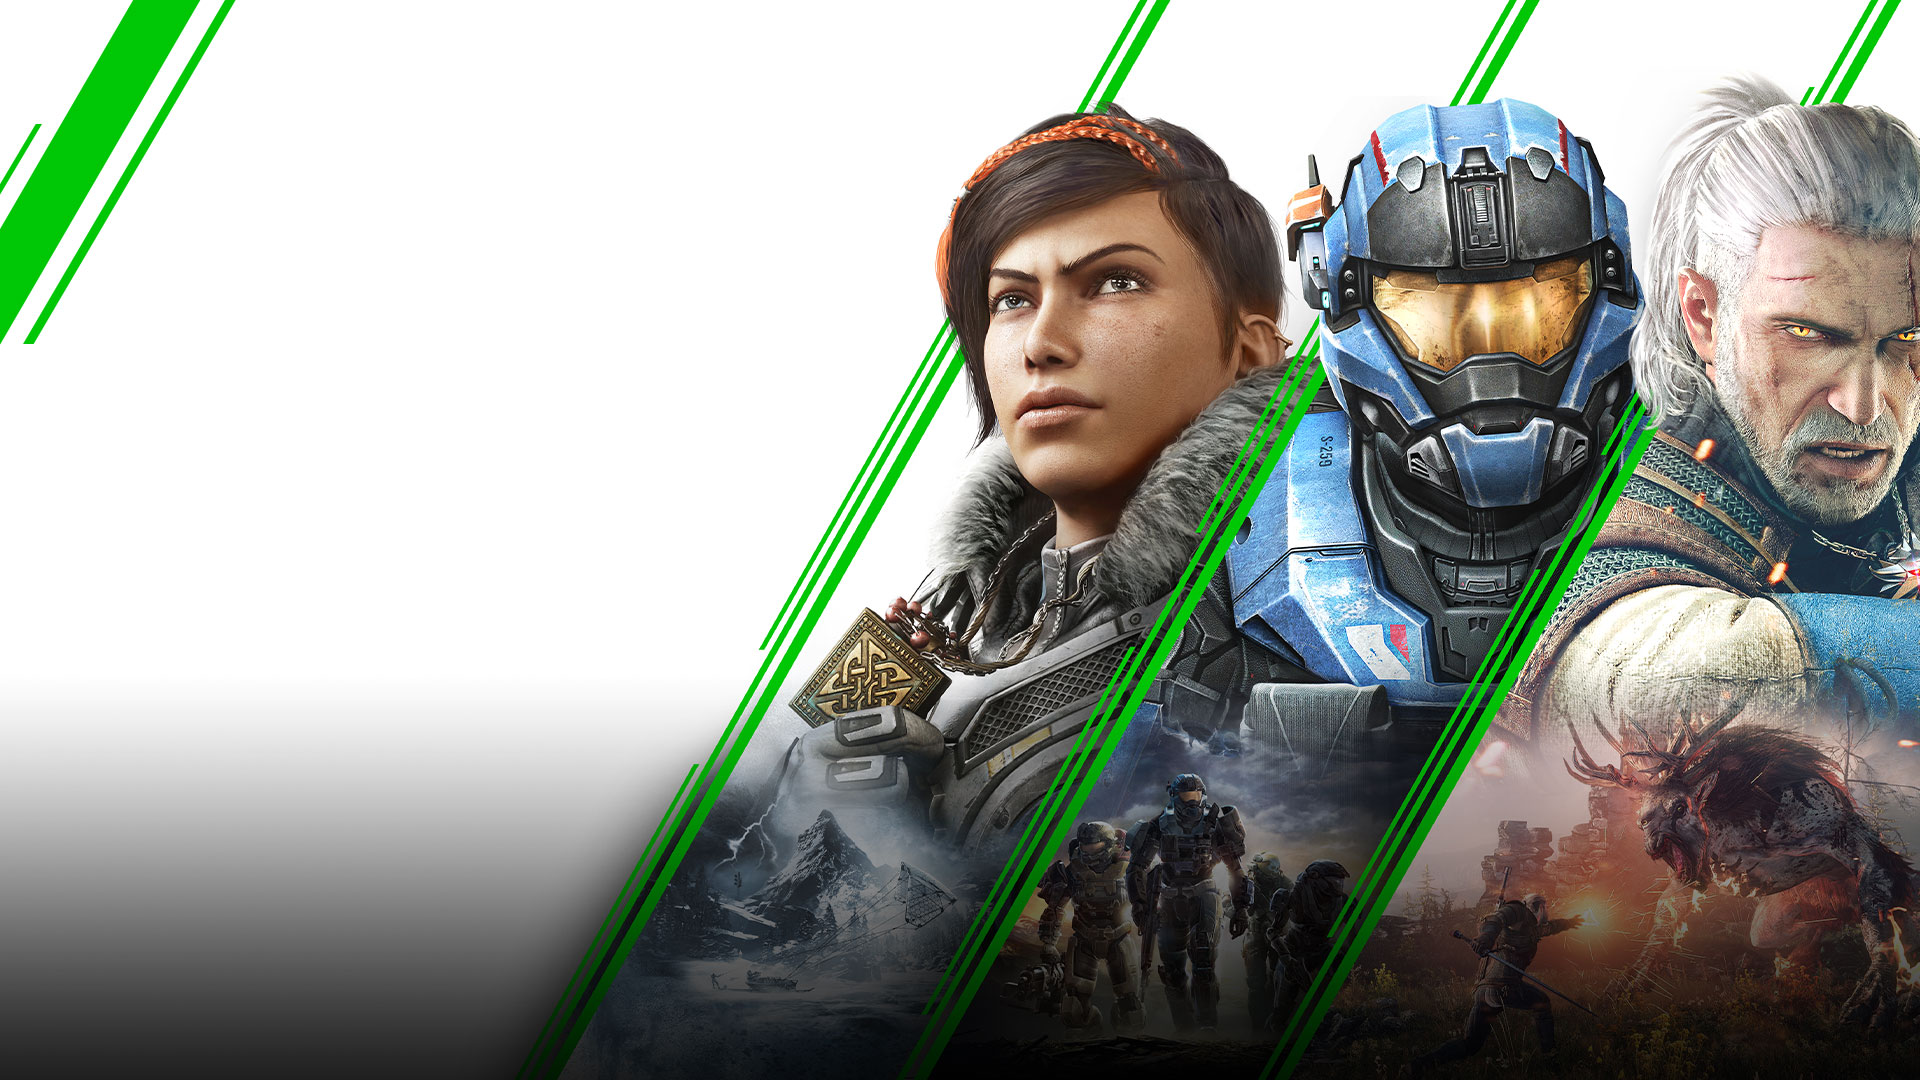 Play Gears 5, Halo Reach and The Witcher with Xbox Game Pass Ultimate